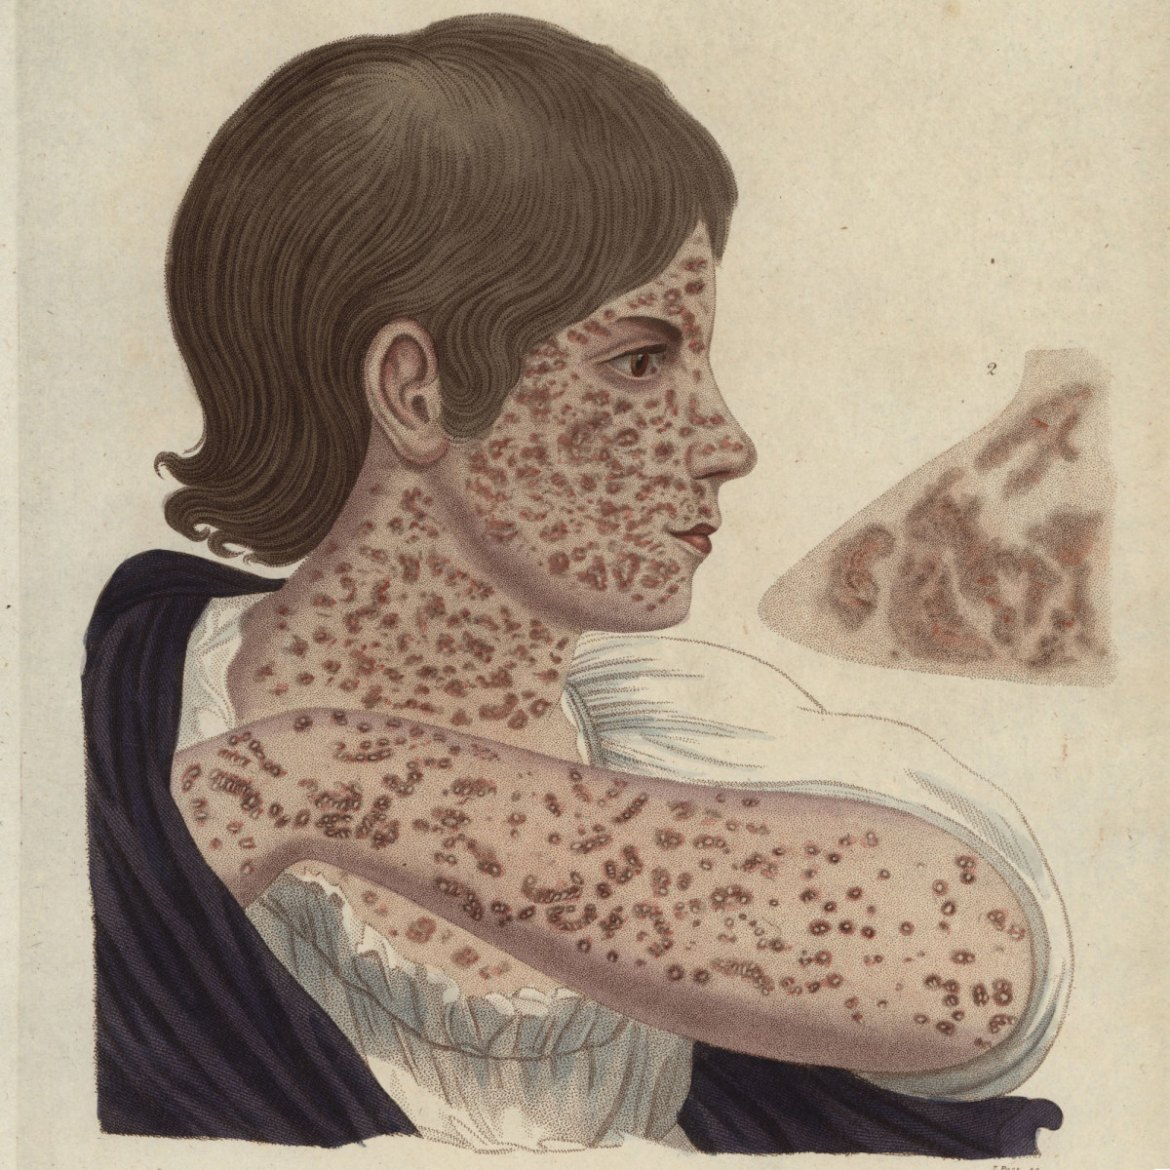 The measles